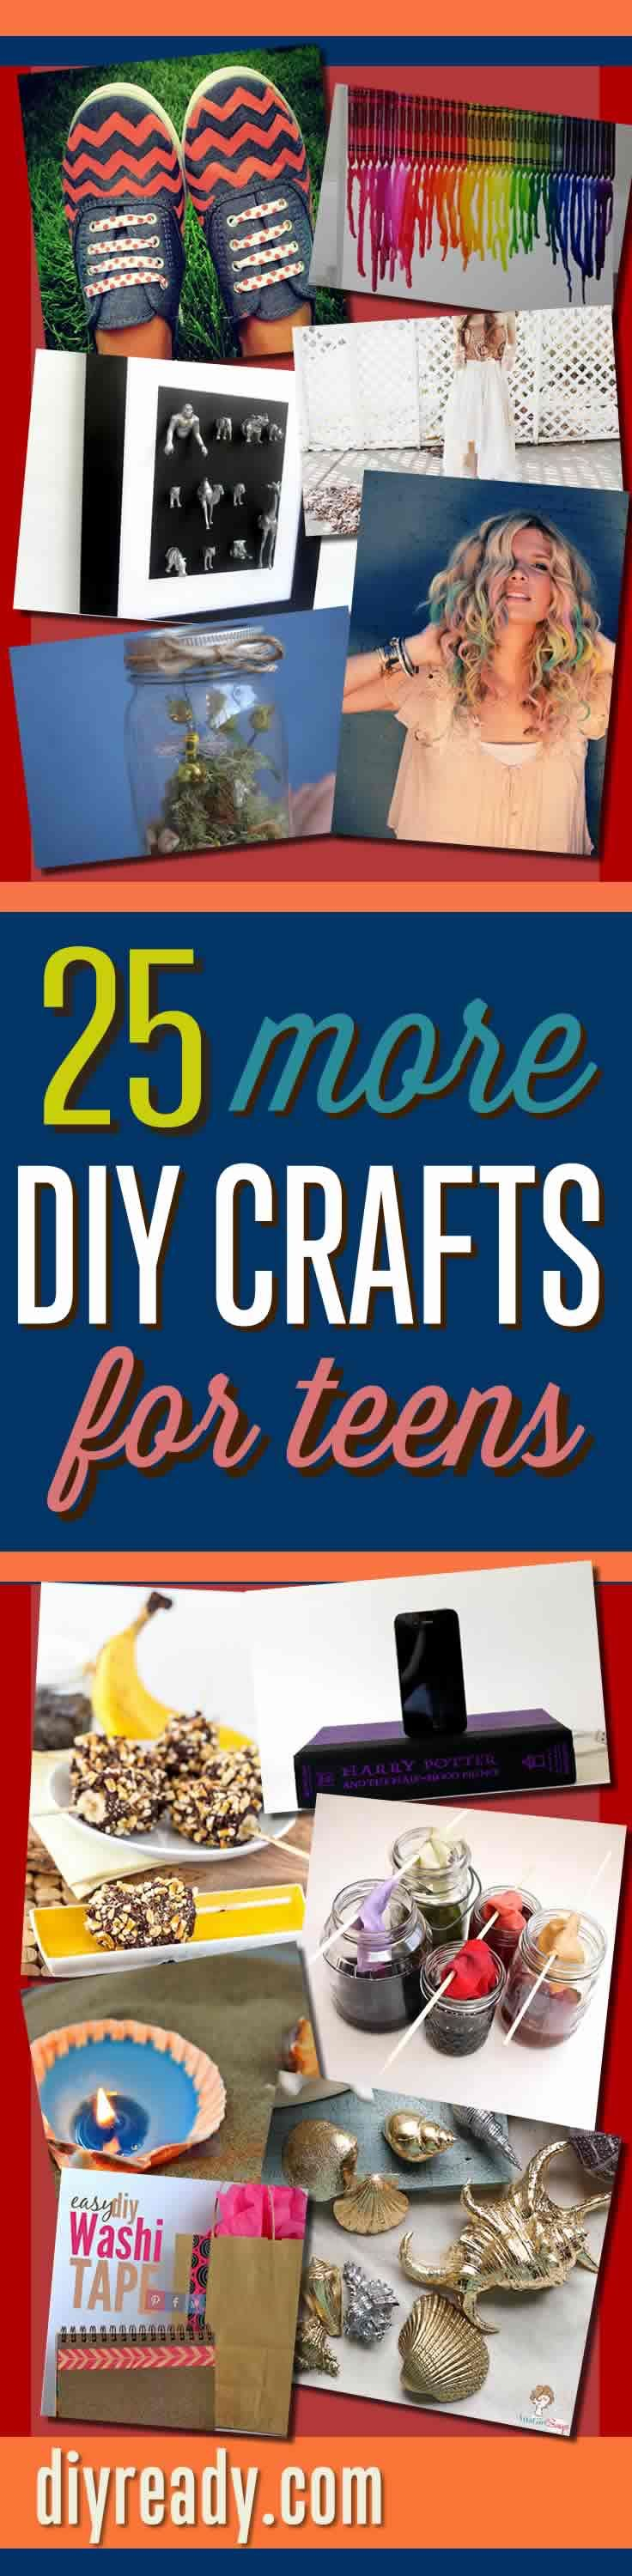 DIY Projects for Teens. Crafts Girls and Boys Love with 25 Cool Craft Projects Ideas and Easy to Follow Tutorials http://diyready.com/25-more-cool-projects-for-teens-cool-crafts-for-teens/